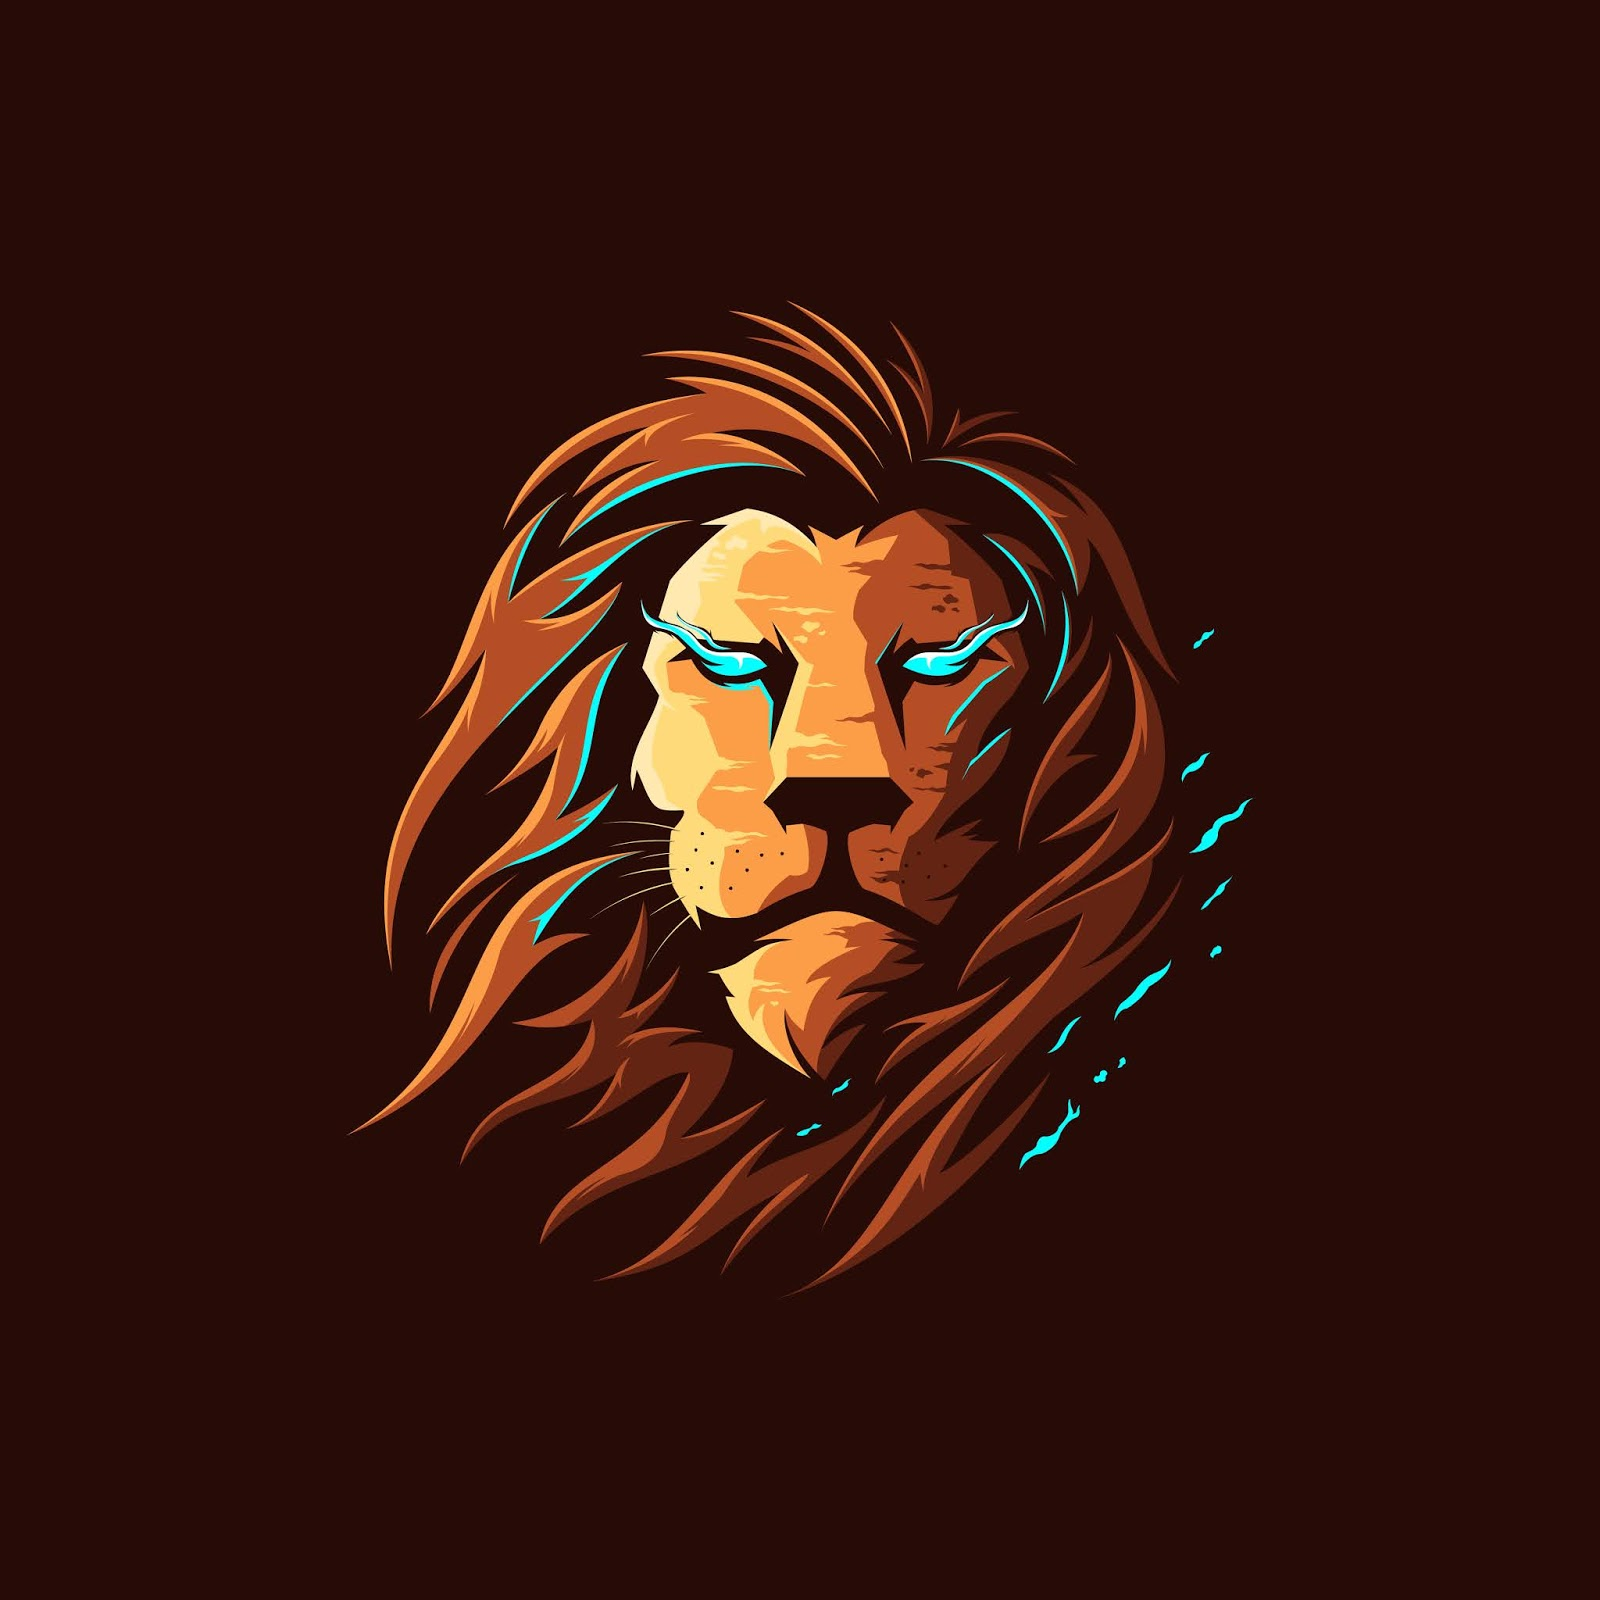 Lion Full Color Illustration Logo Free Download Vector CDR, AI, EPS and PNG Formats